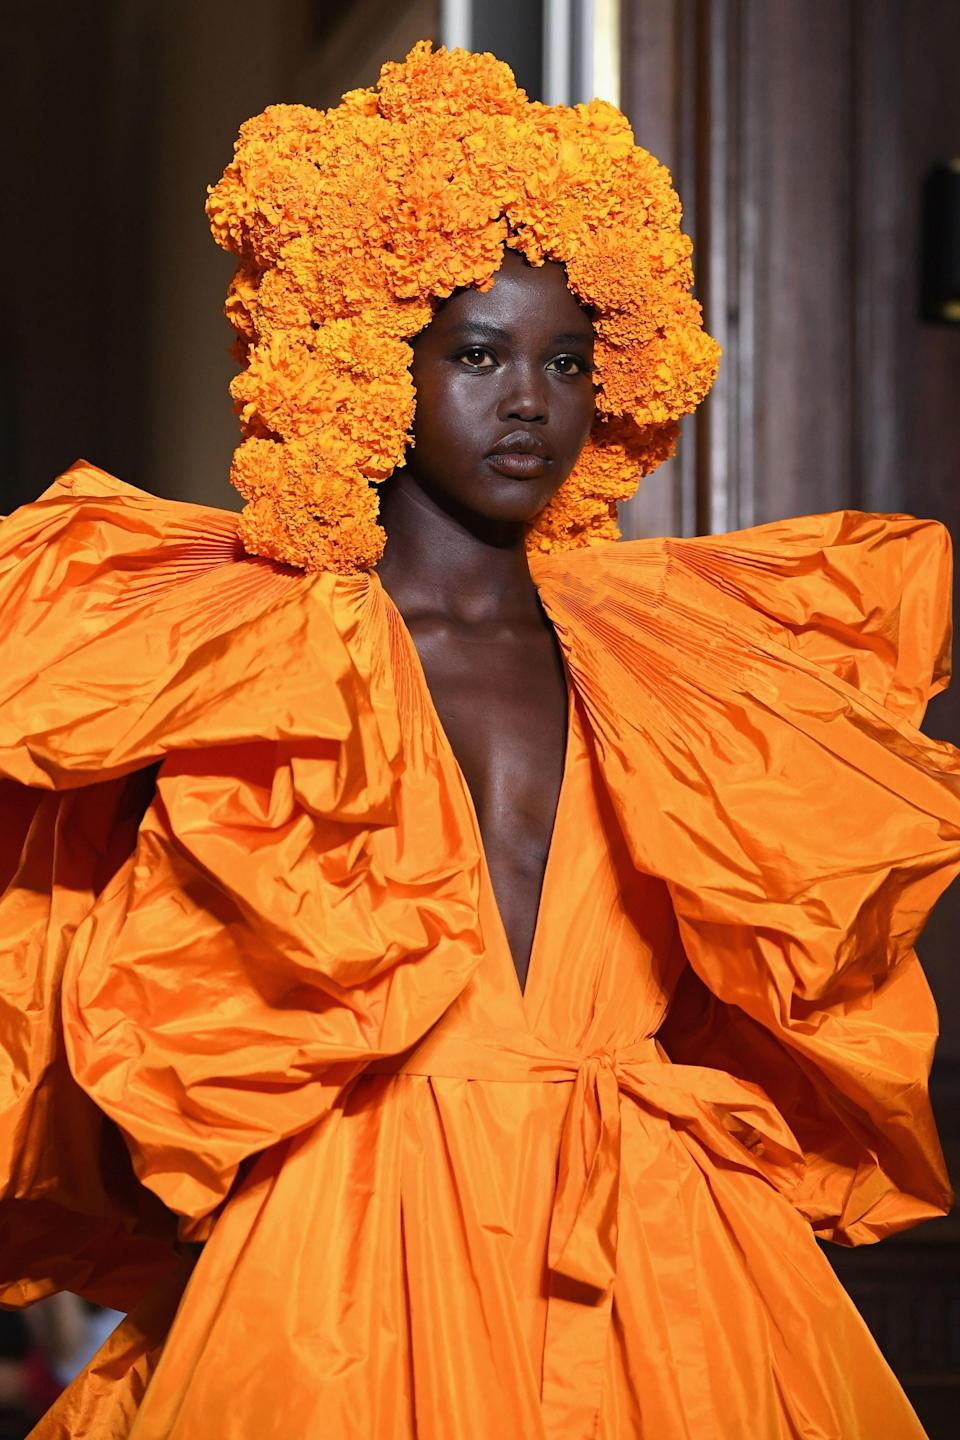 At Paris Fashion Week, Valentino's best runway shows have been continually elevated by a treasure trove of hair adornments.